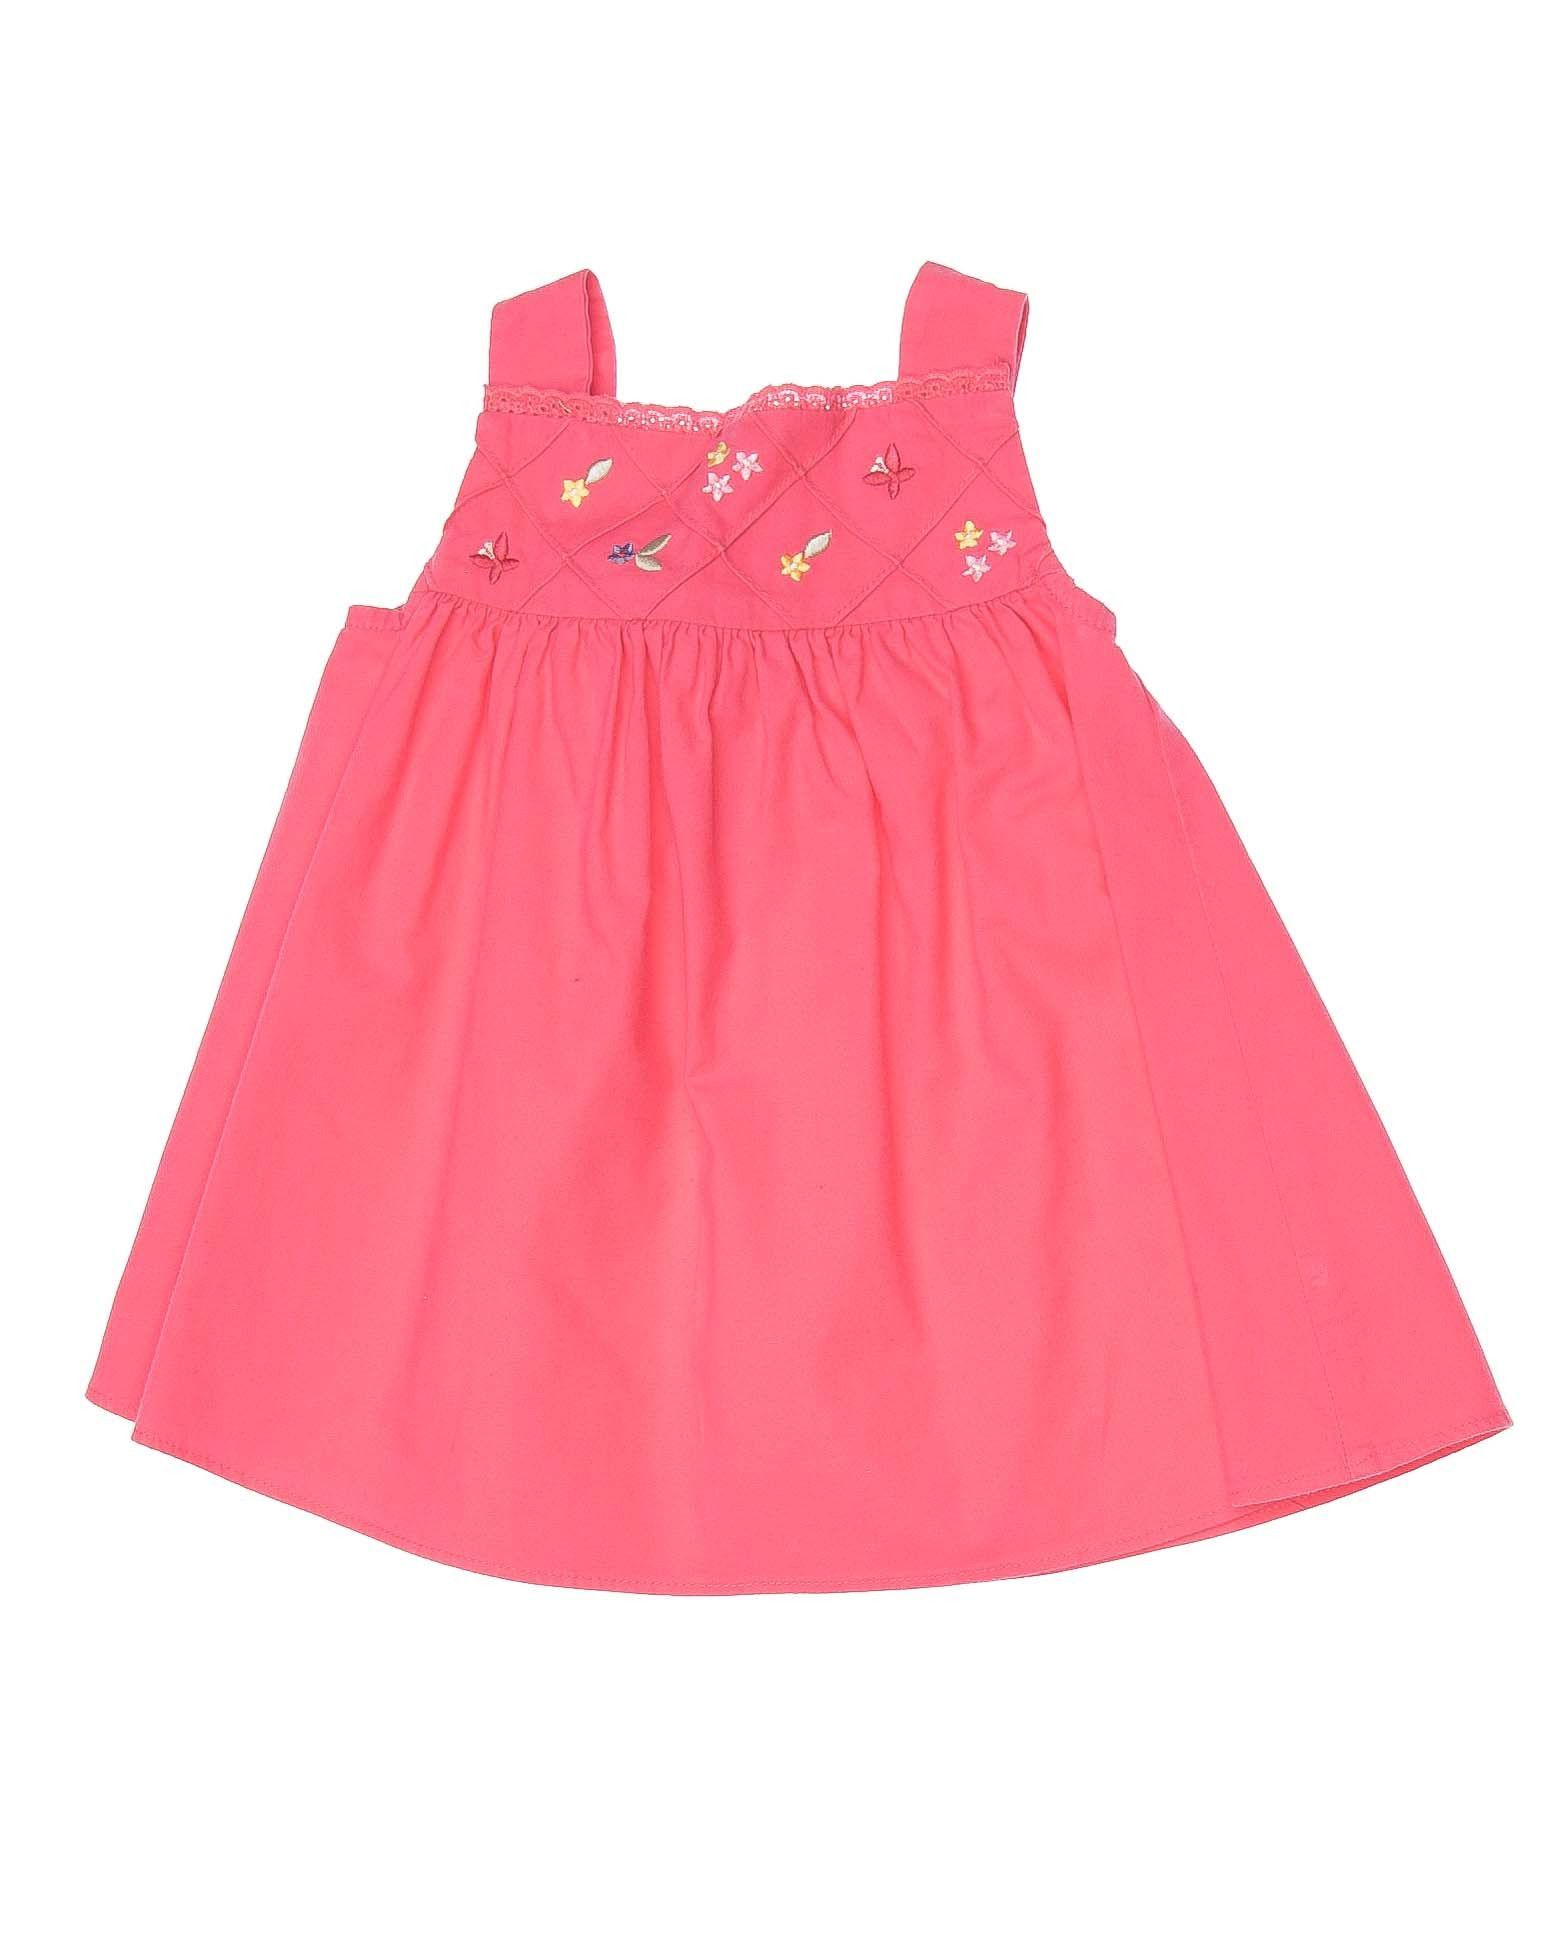 18-24 Months Girls Dress